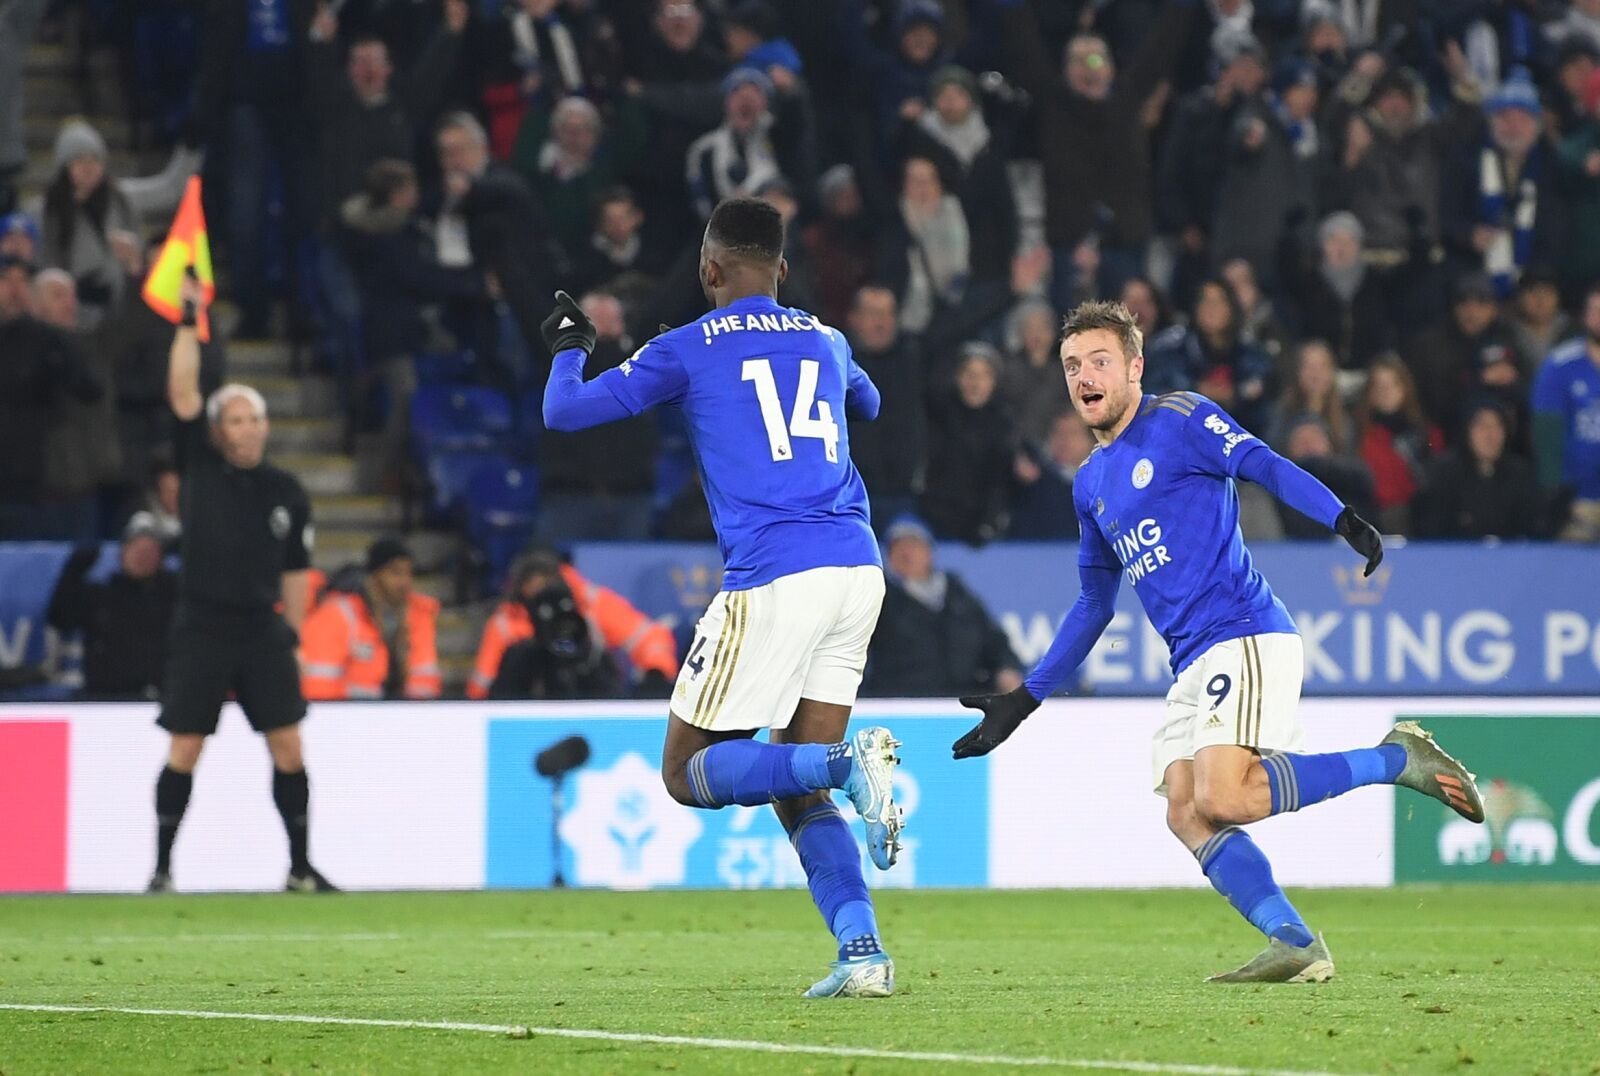 Leicester 2-1 Everton: How Kelechi Iheanacho rose from the dead